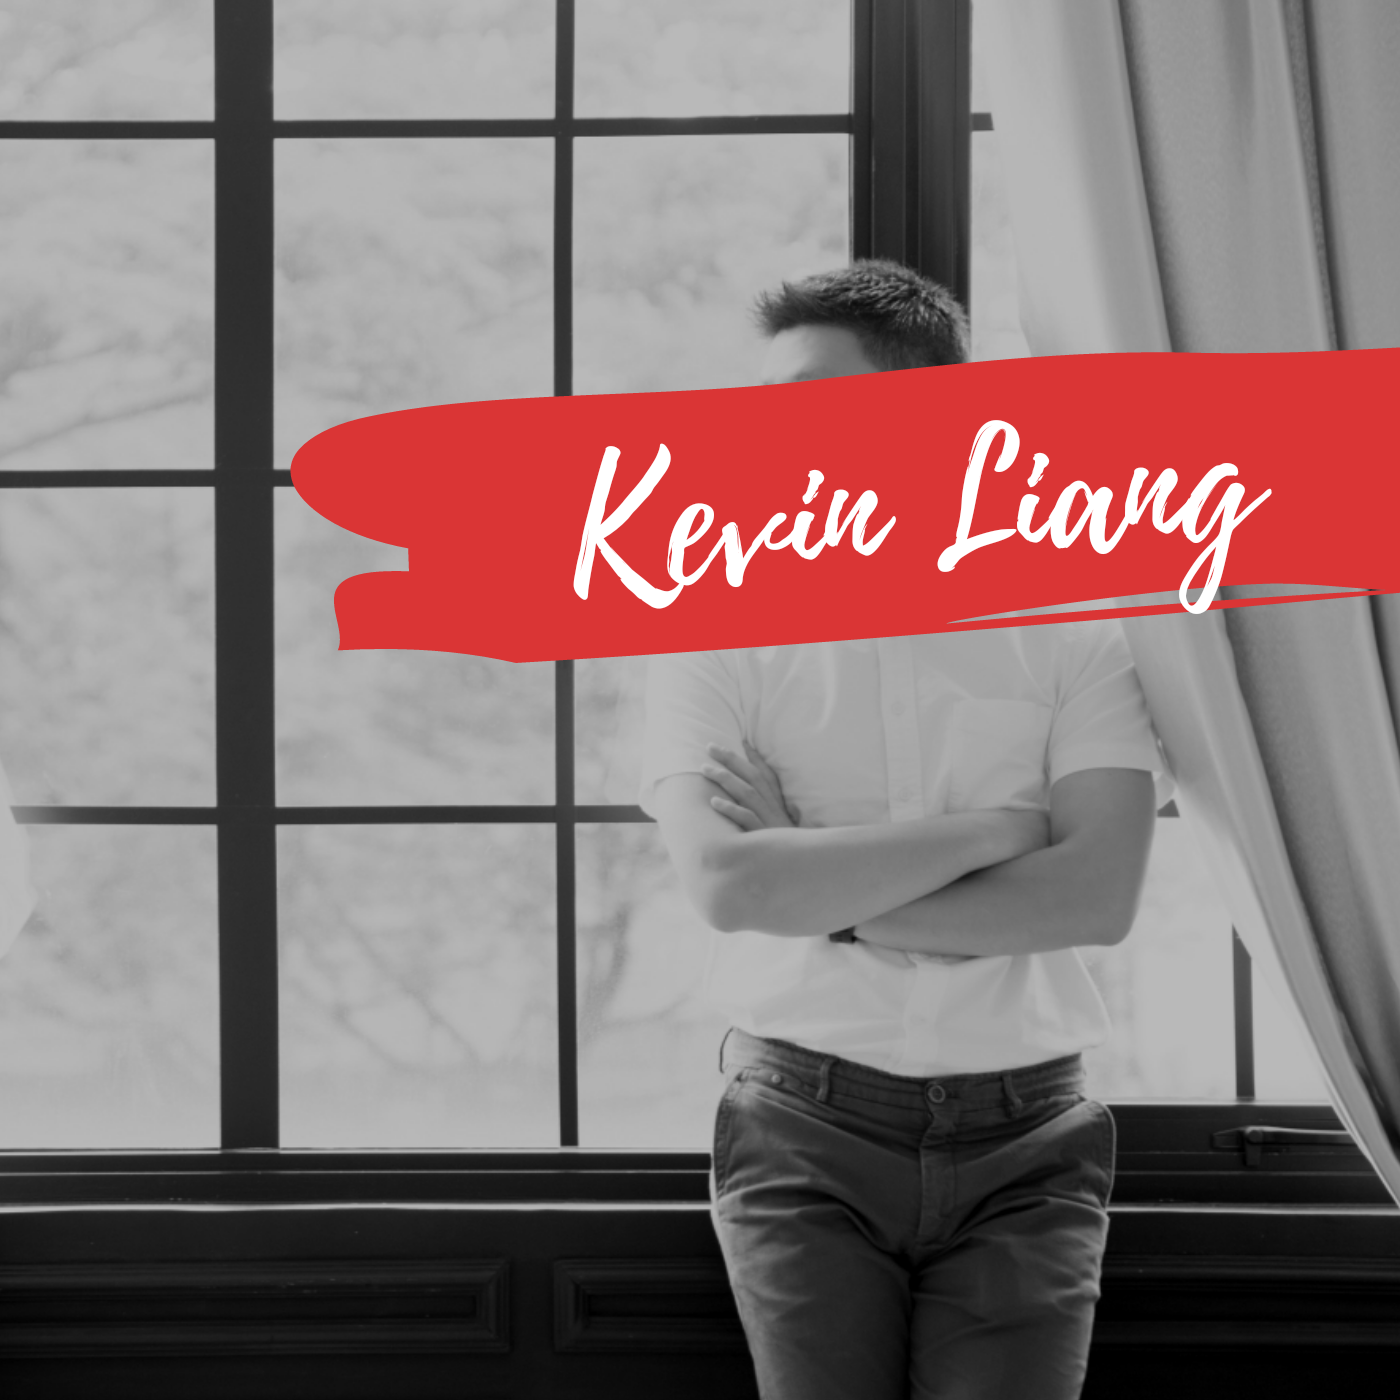 Go to kevin liang's profile